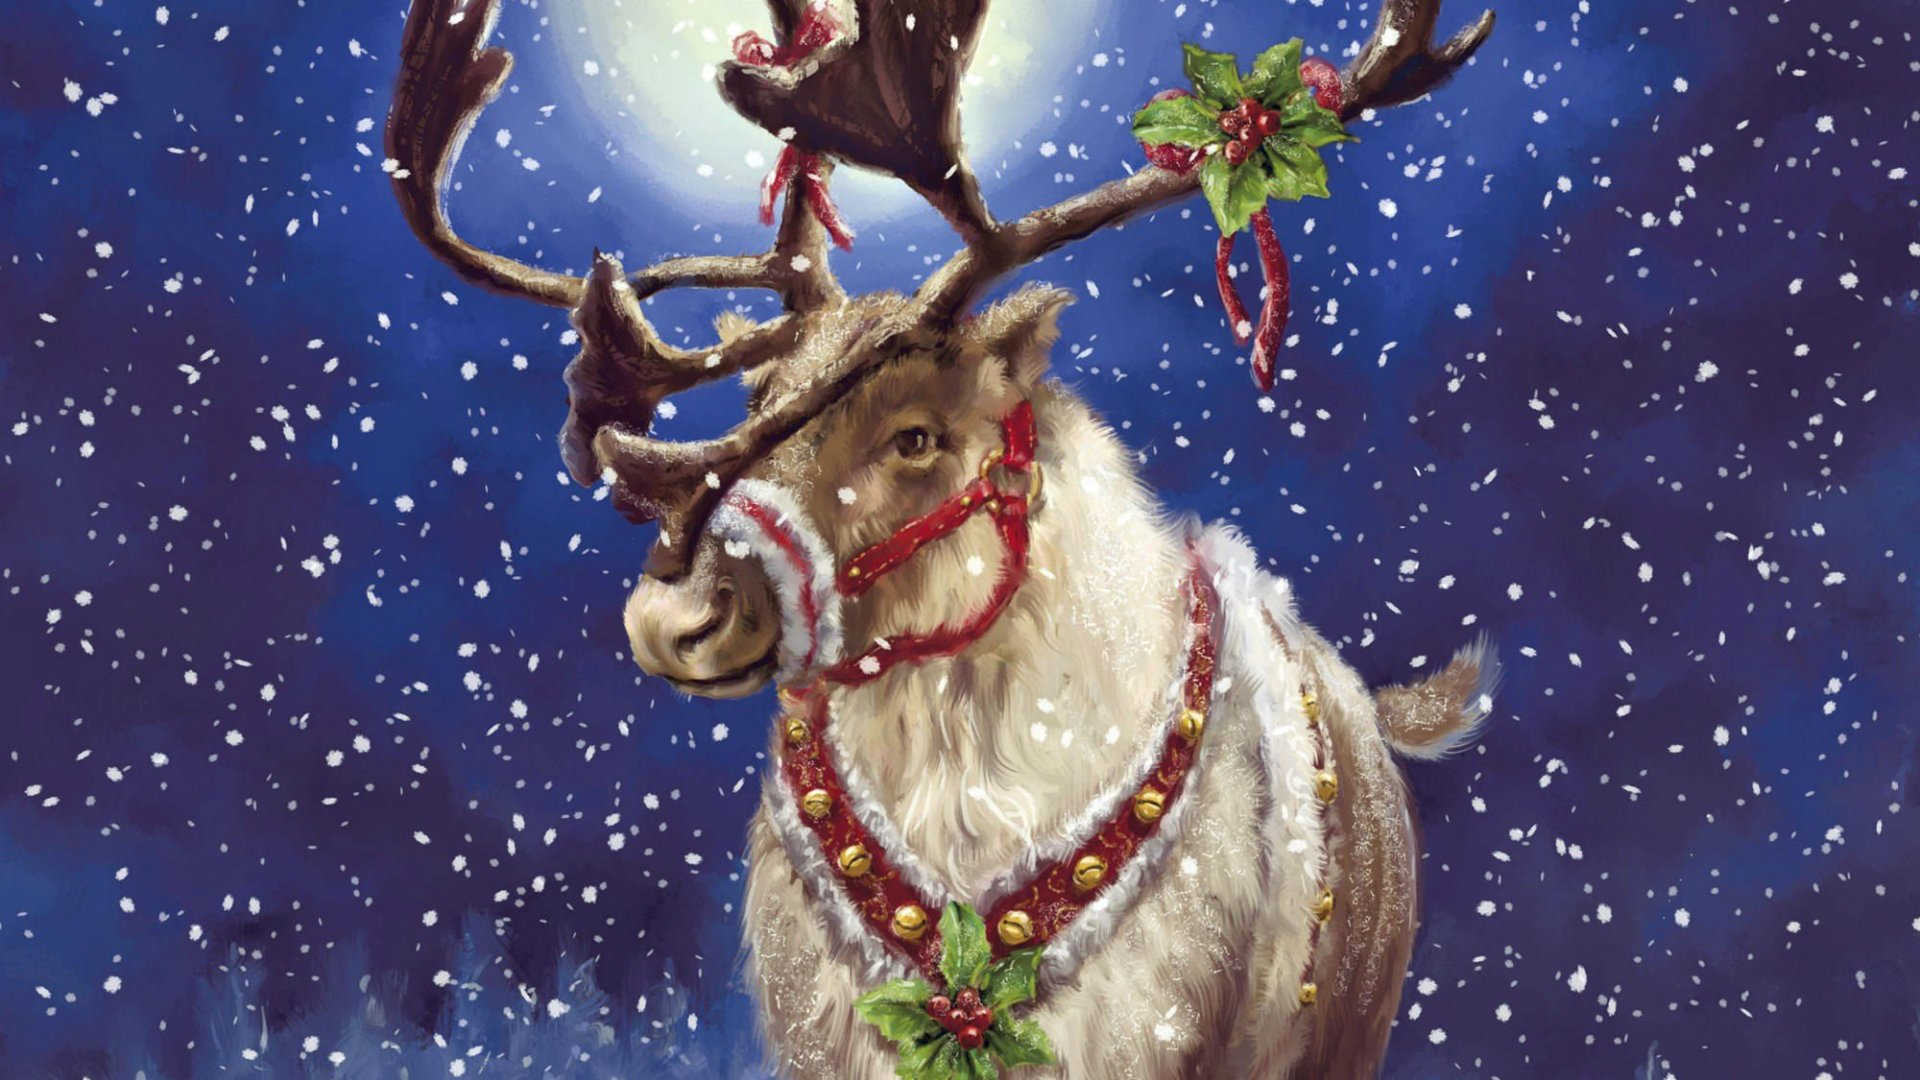 172 1725844 reindeer with mistletoe christmas reindeer